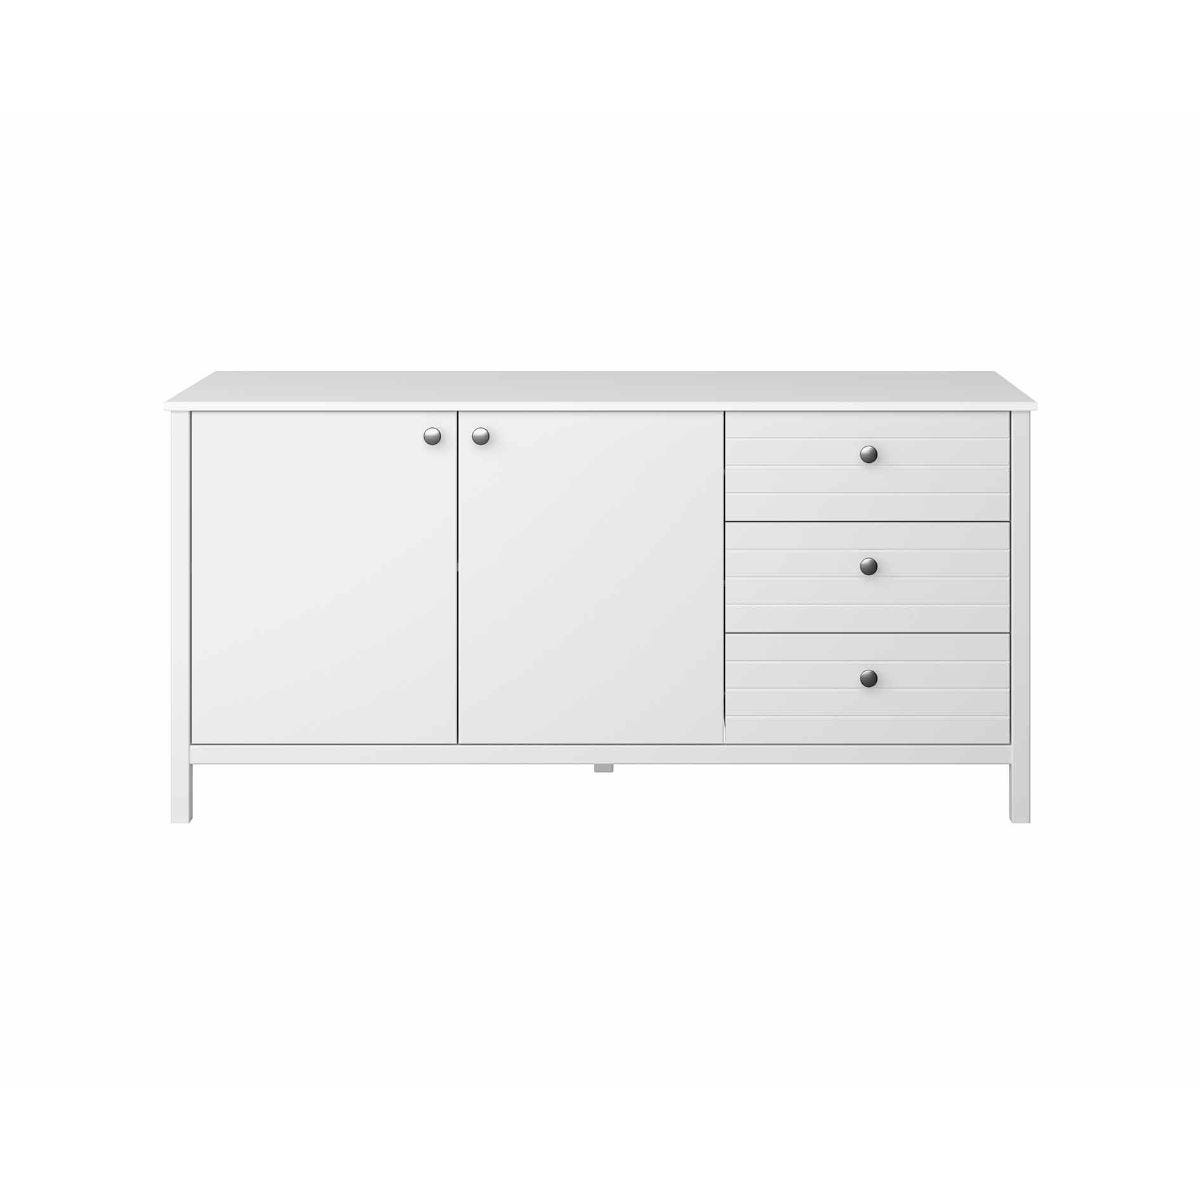 Steens New York Sideboard, White